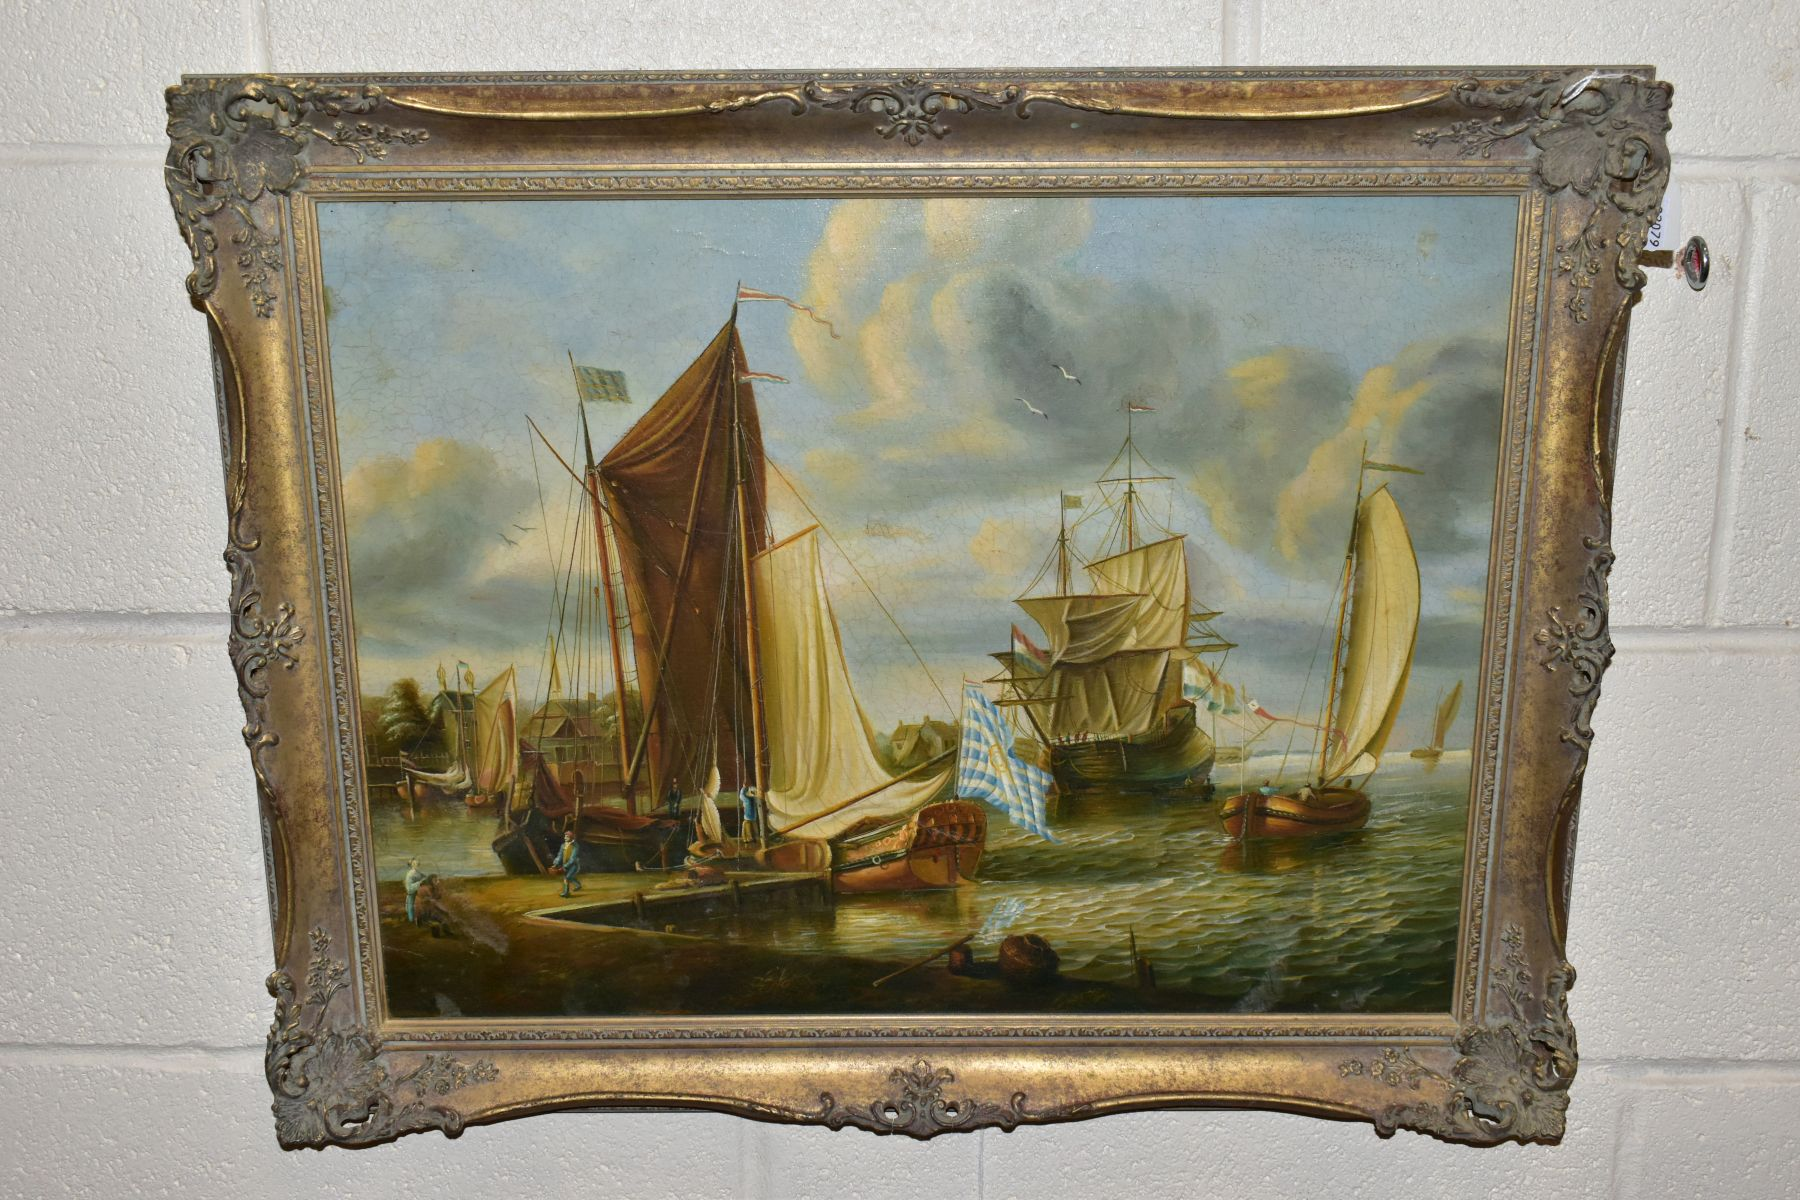 A MODERN 17TH CENTURY VIEW OF A DUTCH MARITIME SCENE after the original by Abraham Storck, unsigned,